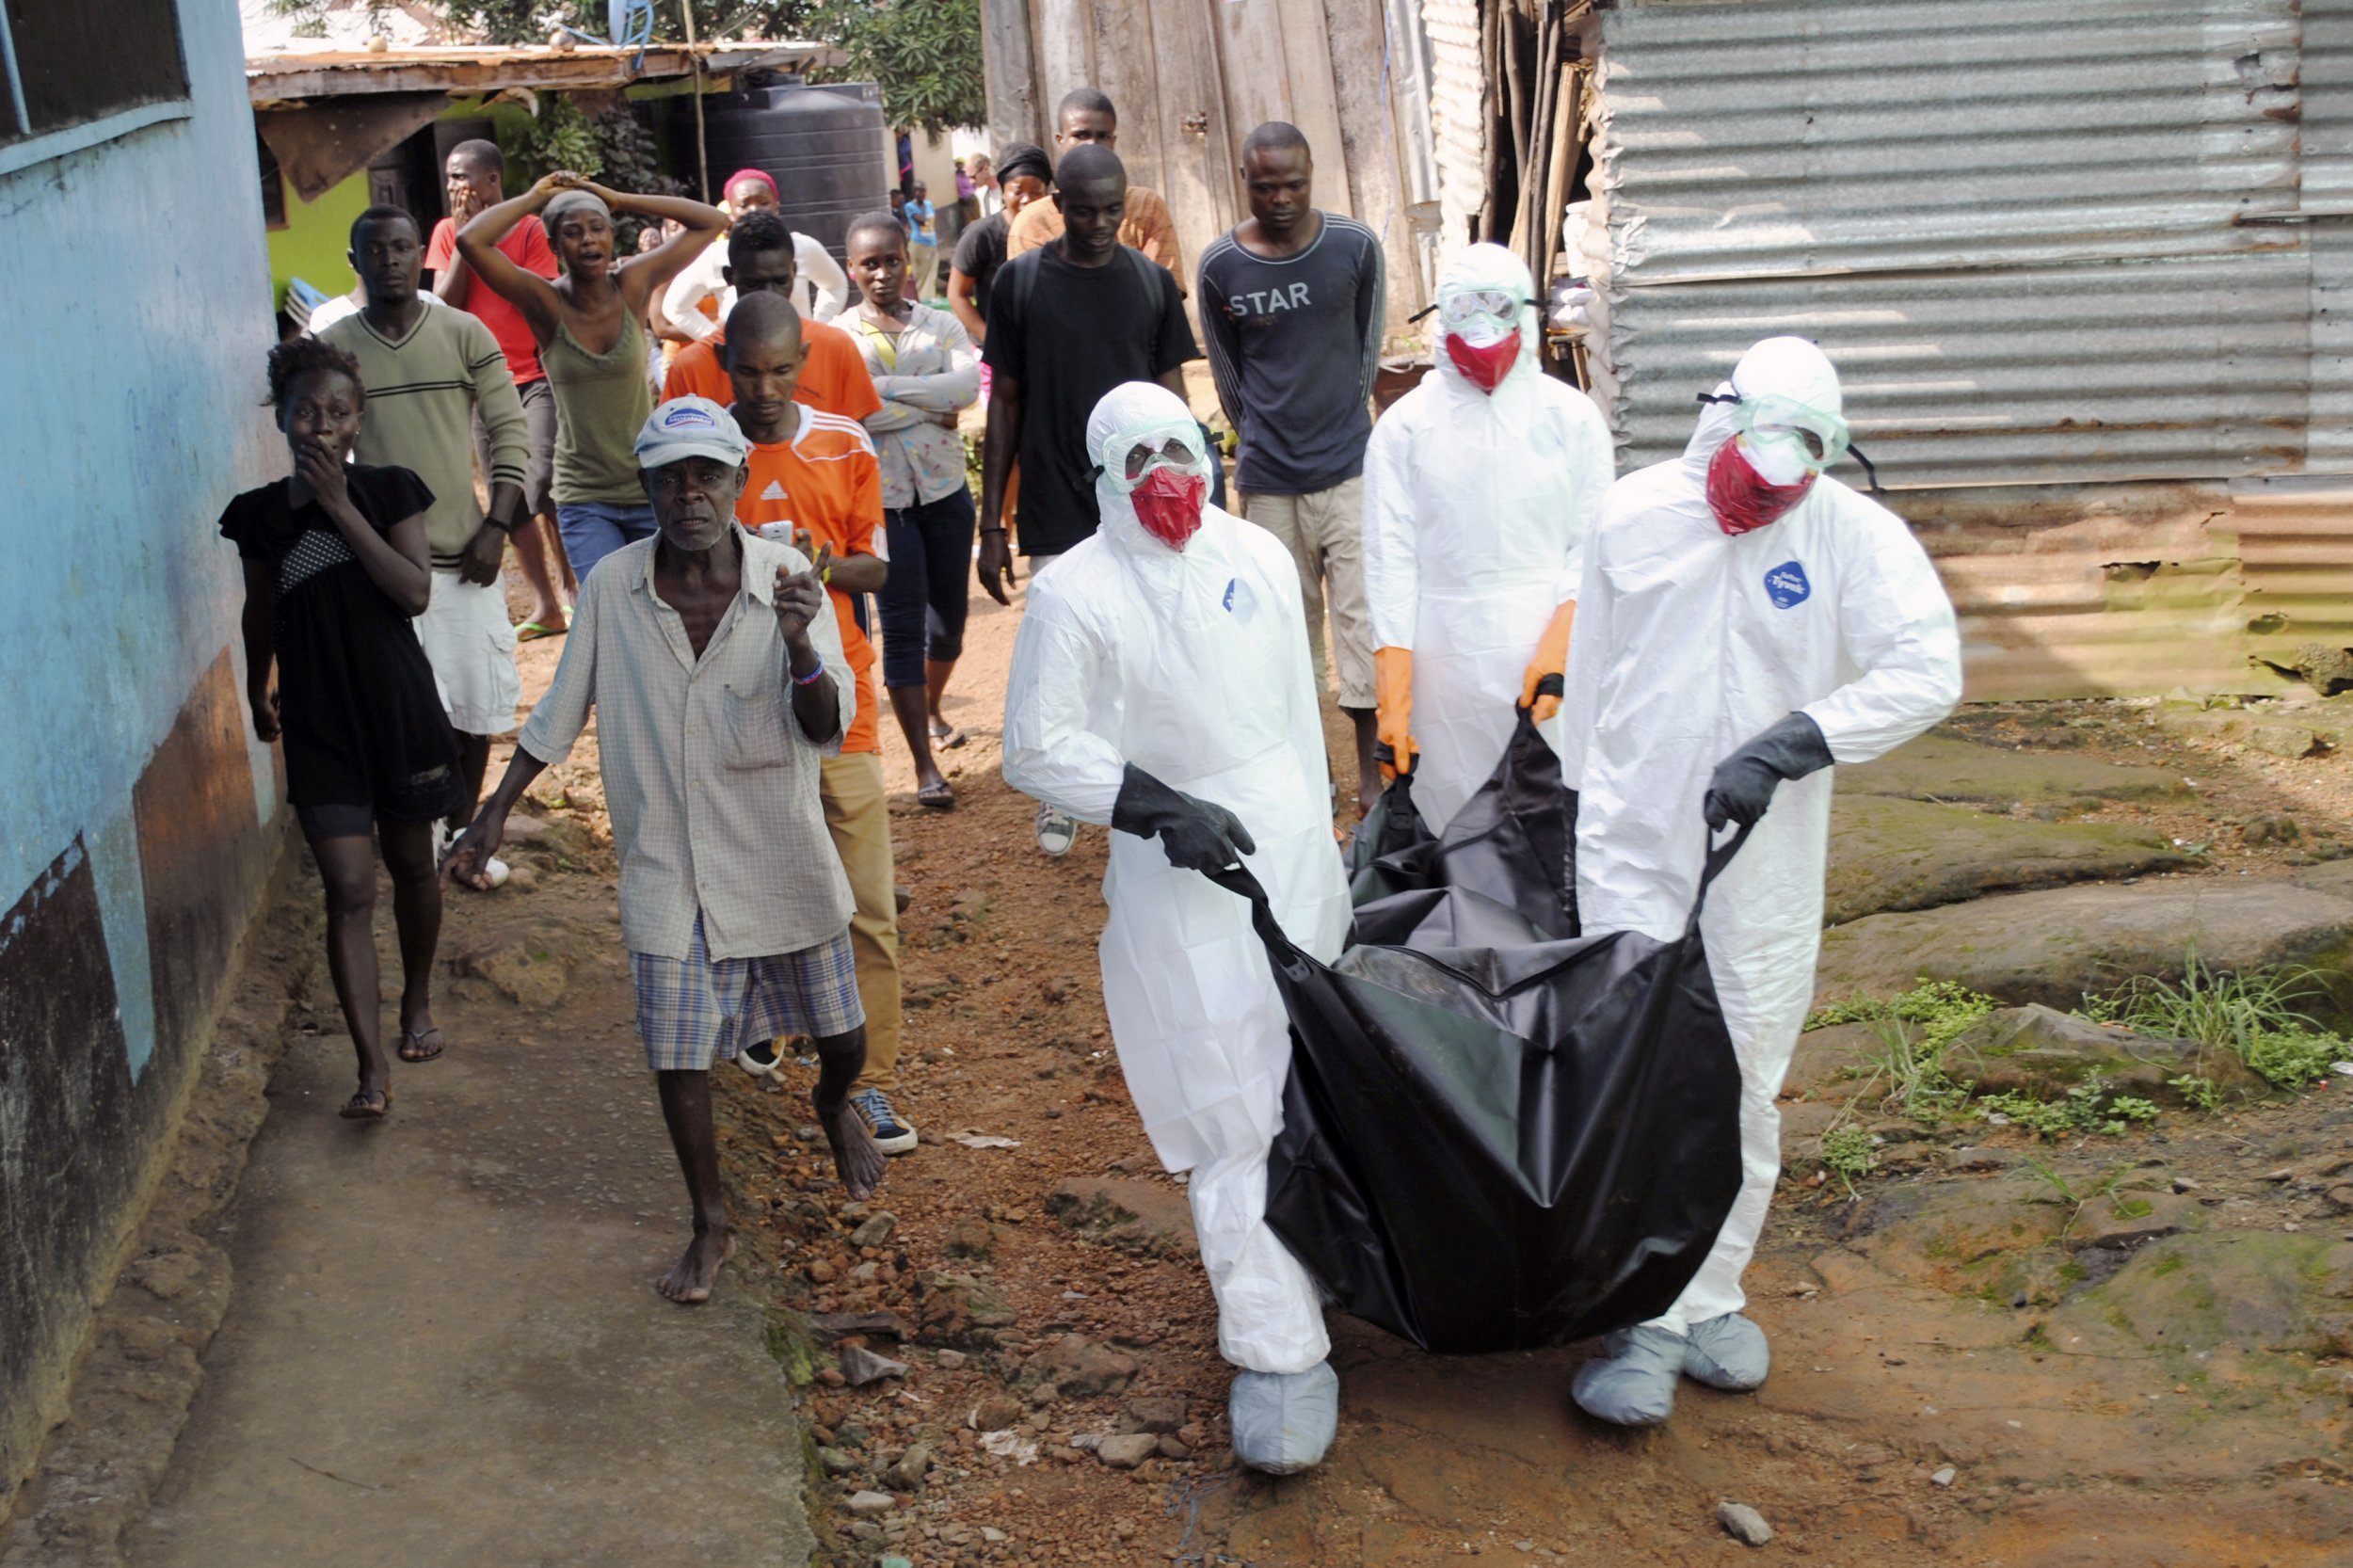 Ebola returns: What you need to know about the